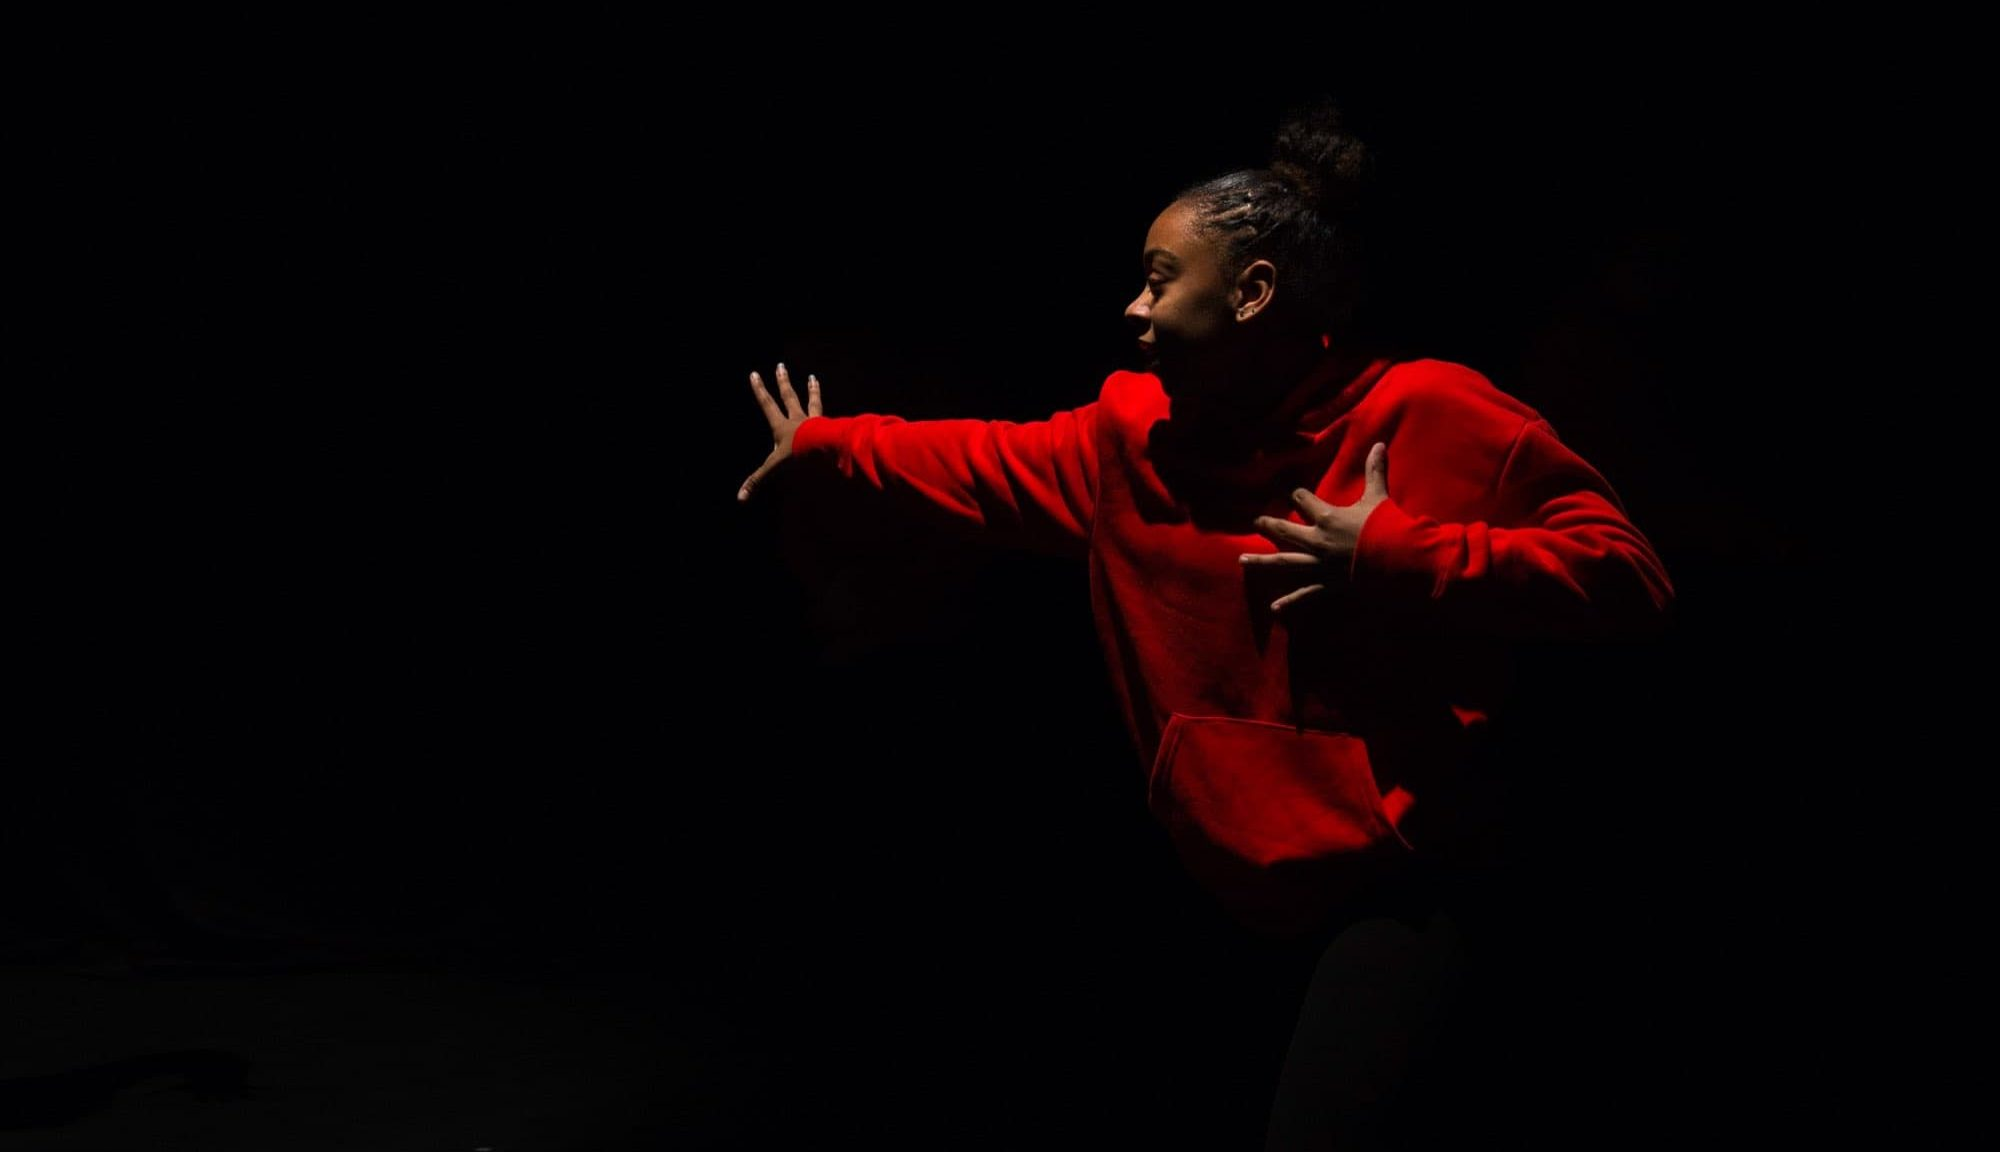 girl in red jumper performance